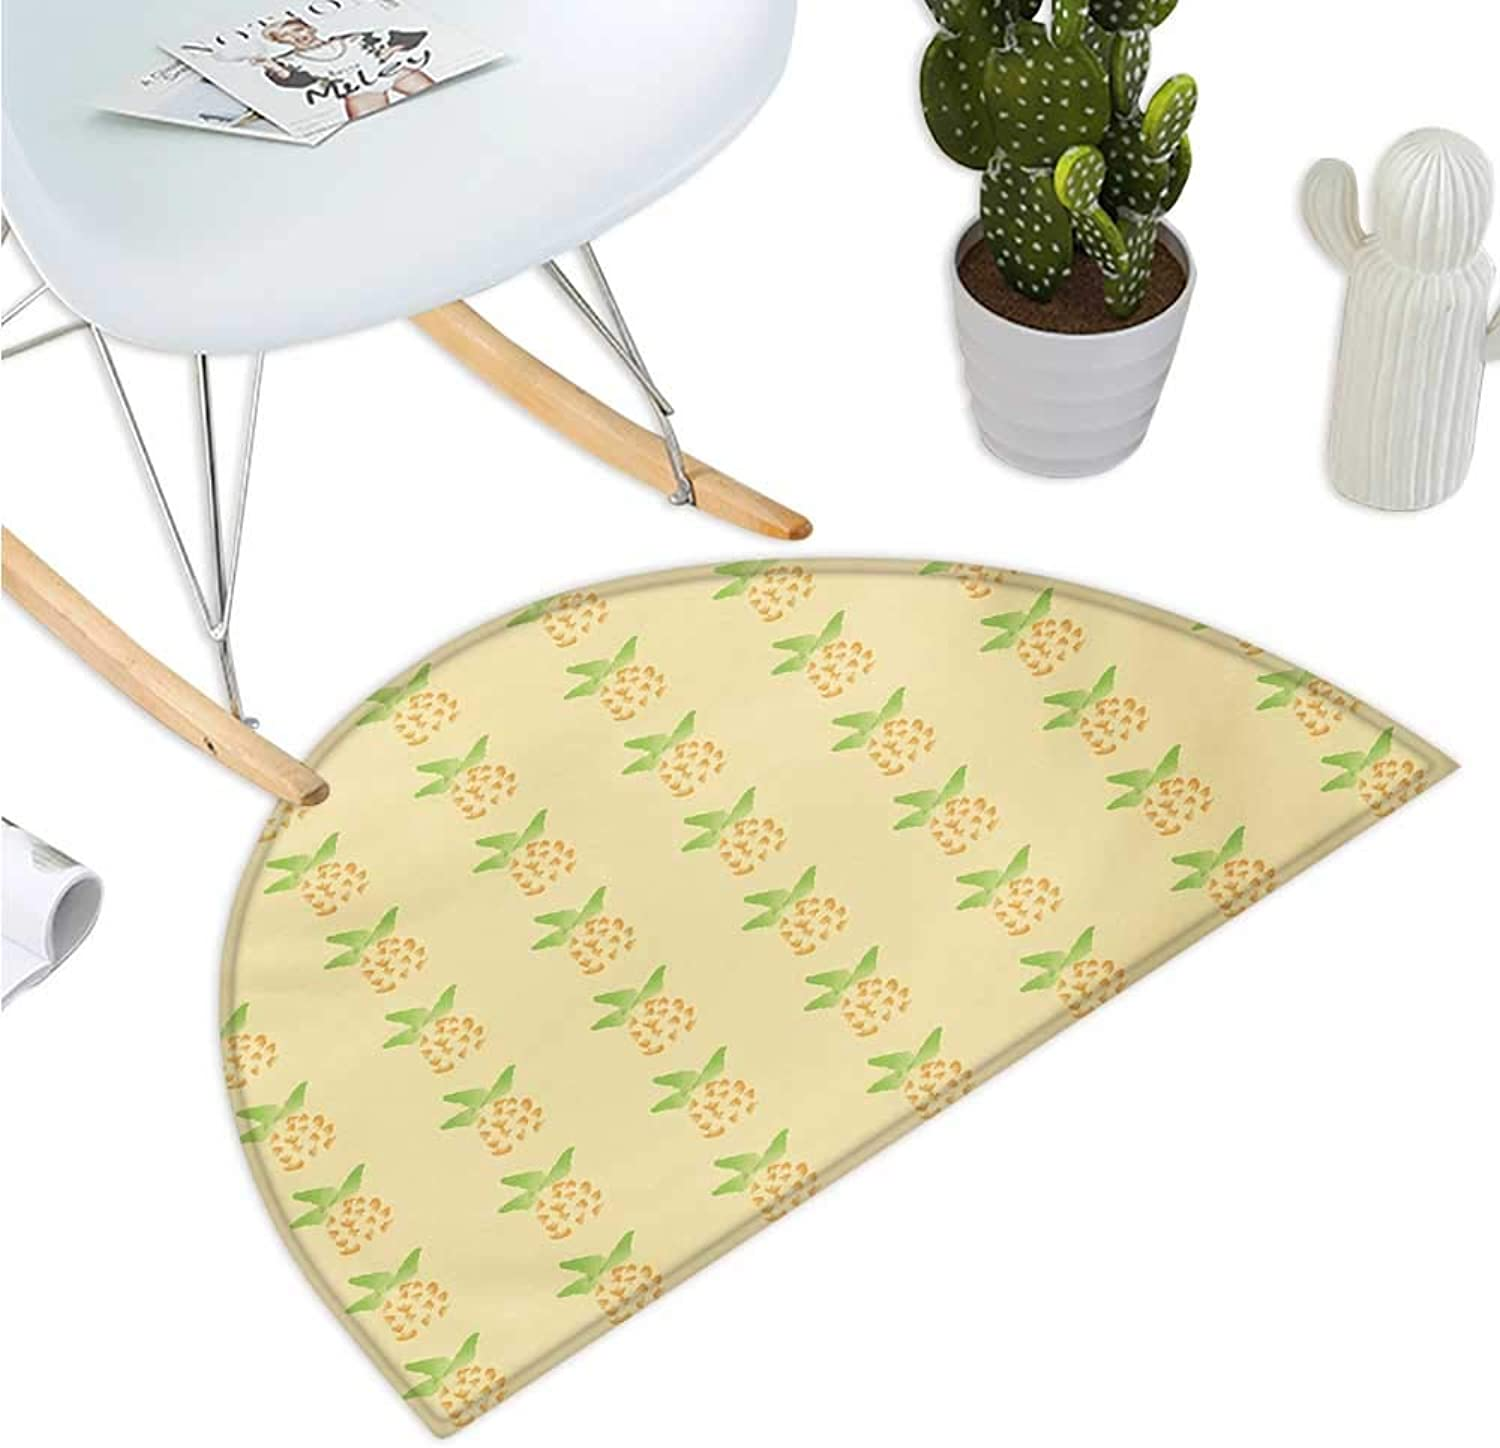 Exotic Semicircular Cushion Watercolor Pineapple with Brush Strokes Hawaii Themed Illustration Entry Door Mat H 39.3  xD 59  orange Pale Yellow Green